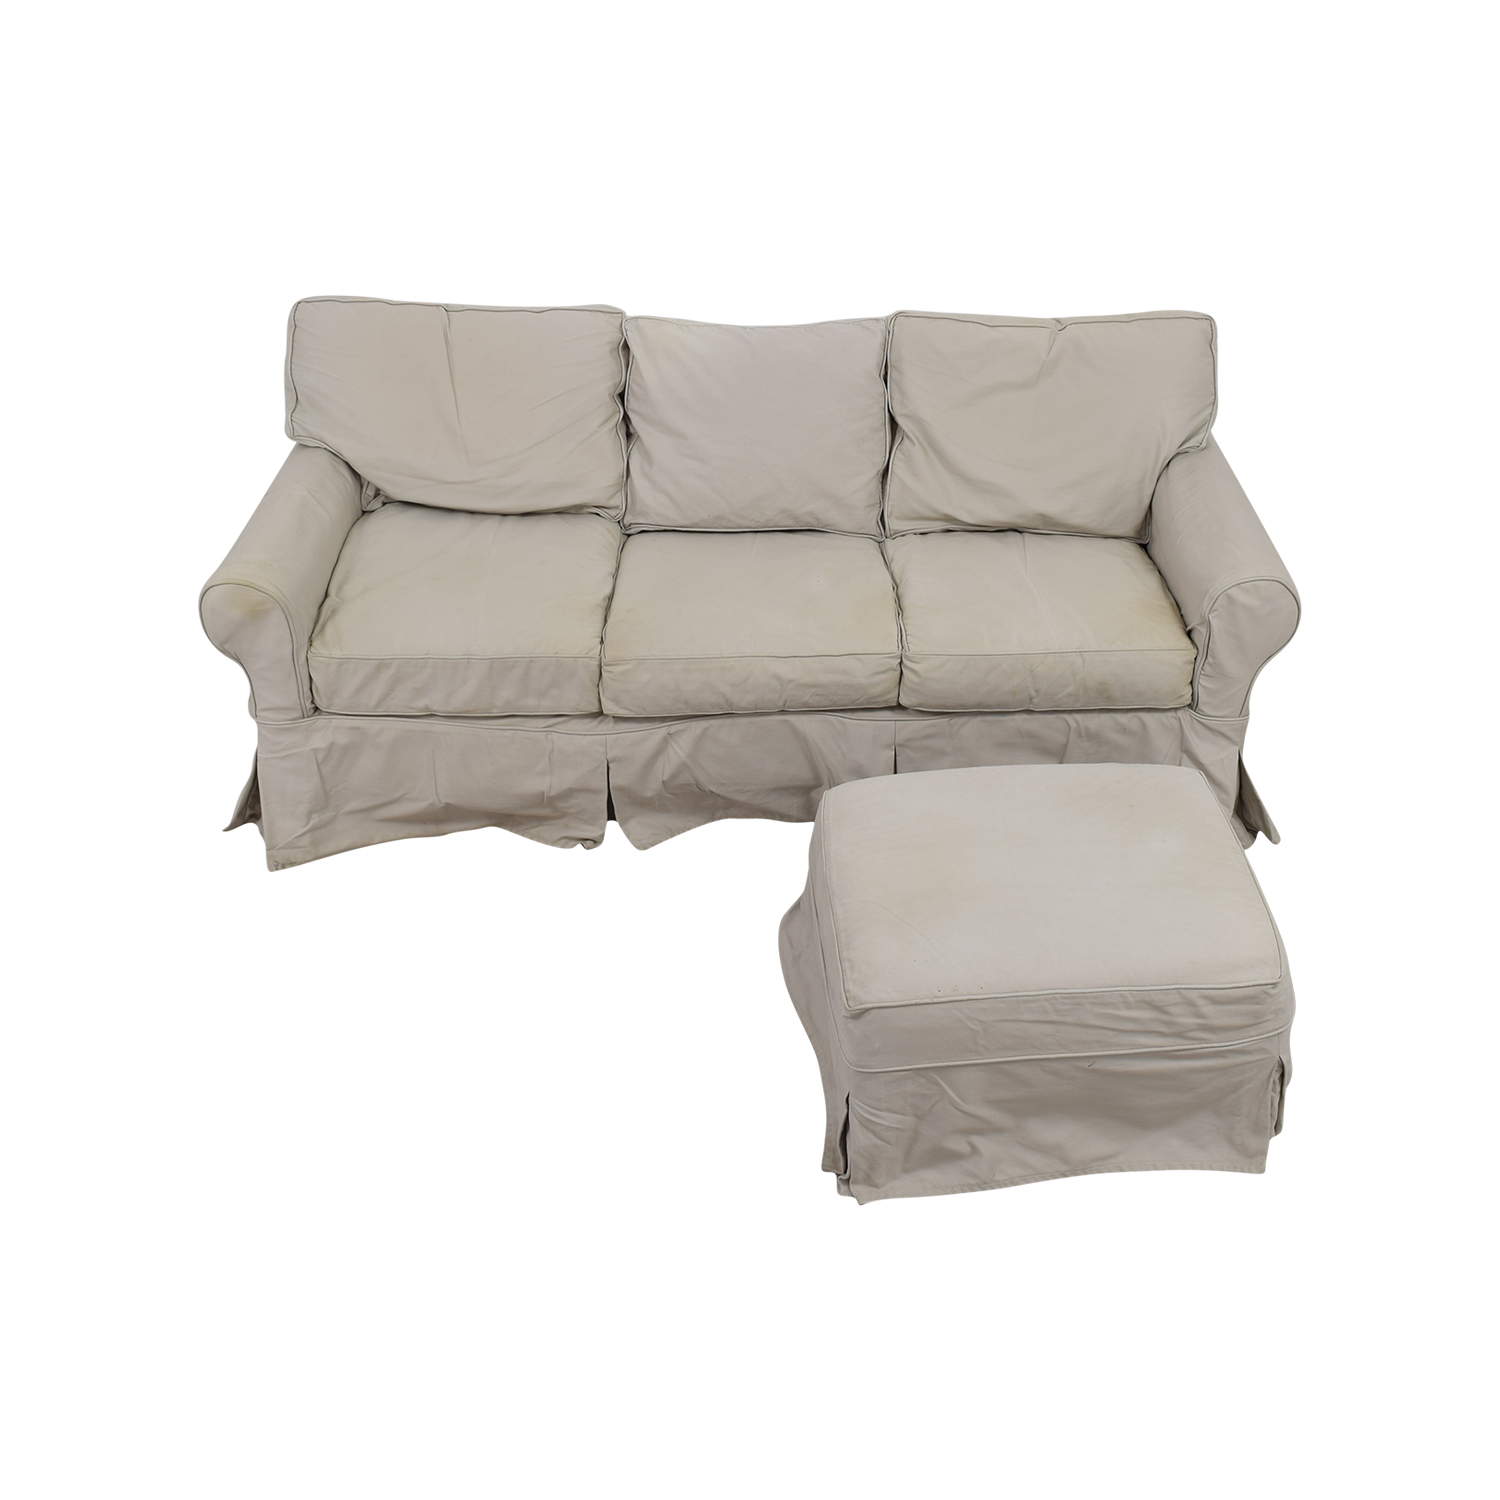 Pottery Barn Basic Slipcovered Sofa and Ottoman sale